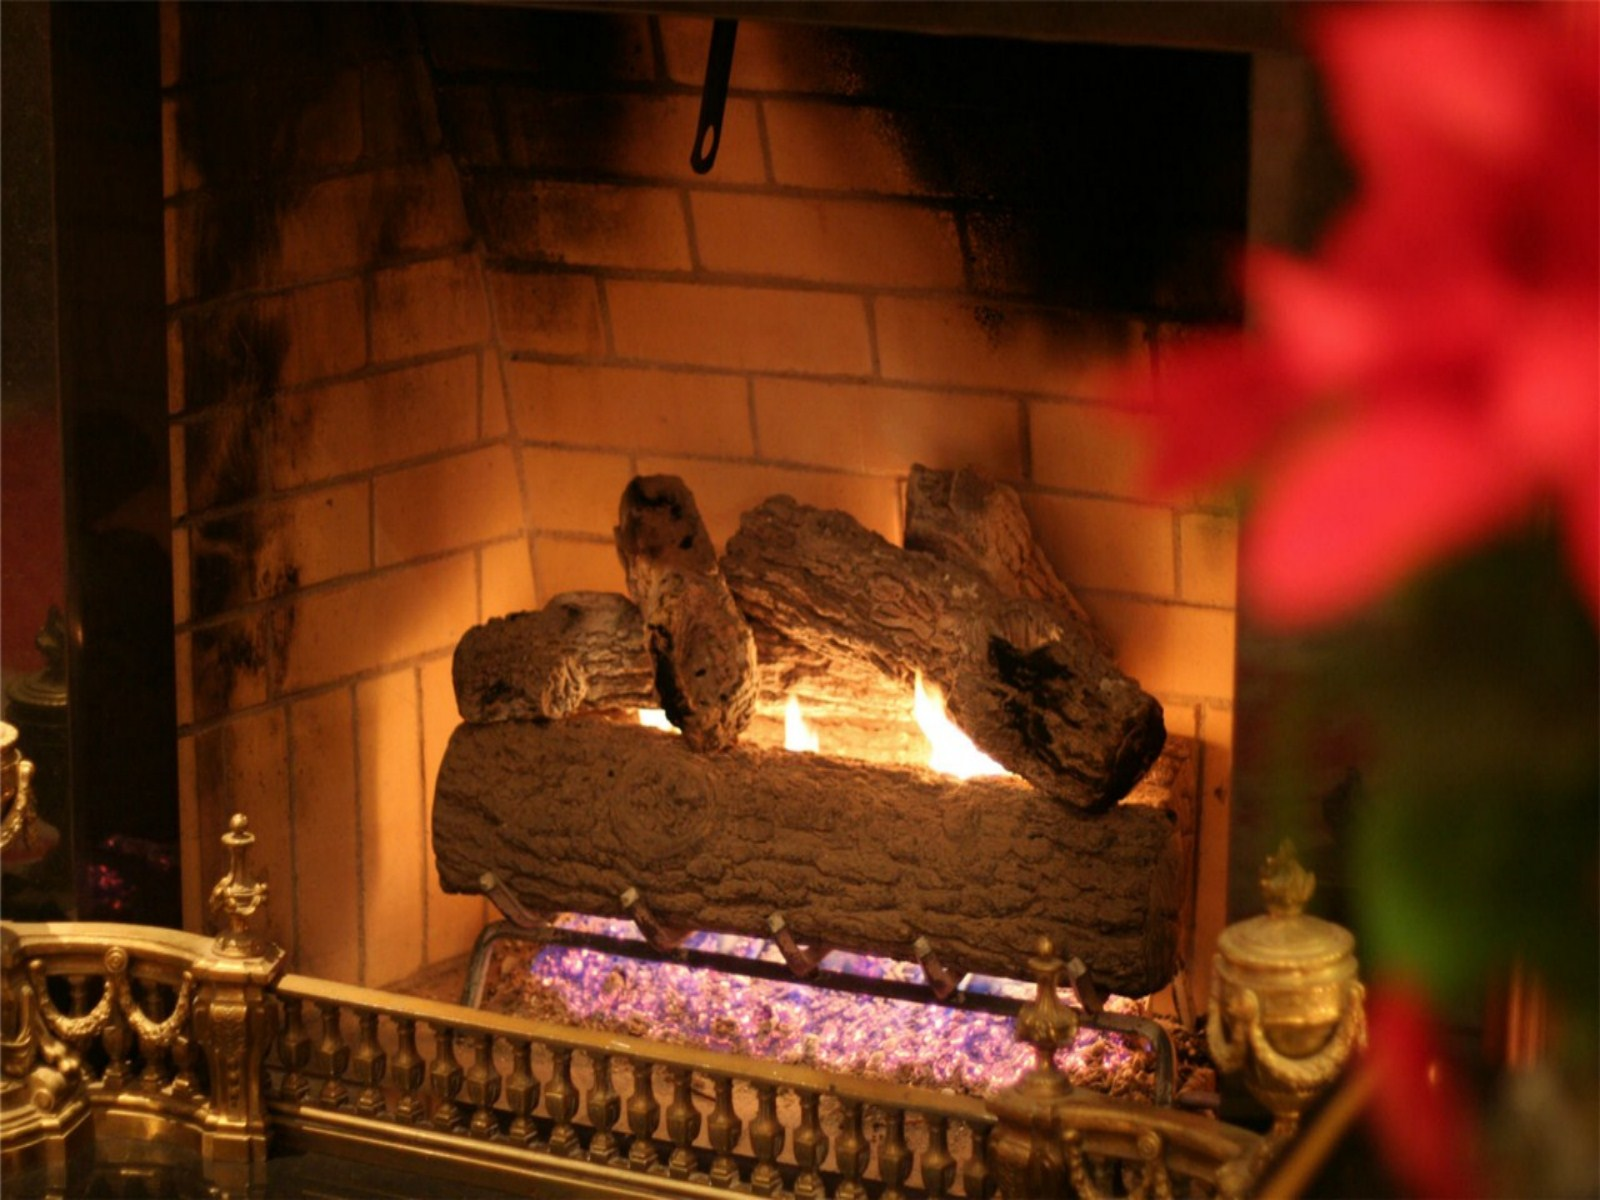 Fireplace Wallpaper For Pc Christmas Fireplace Wallpaper Fireplace 1600x1200